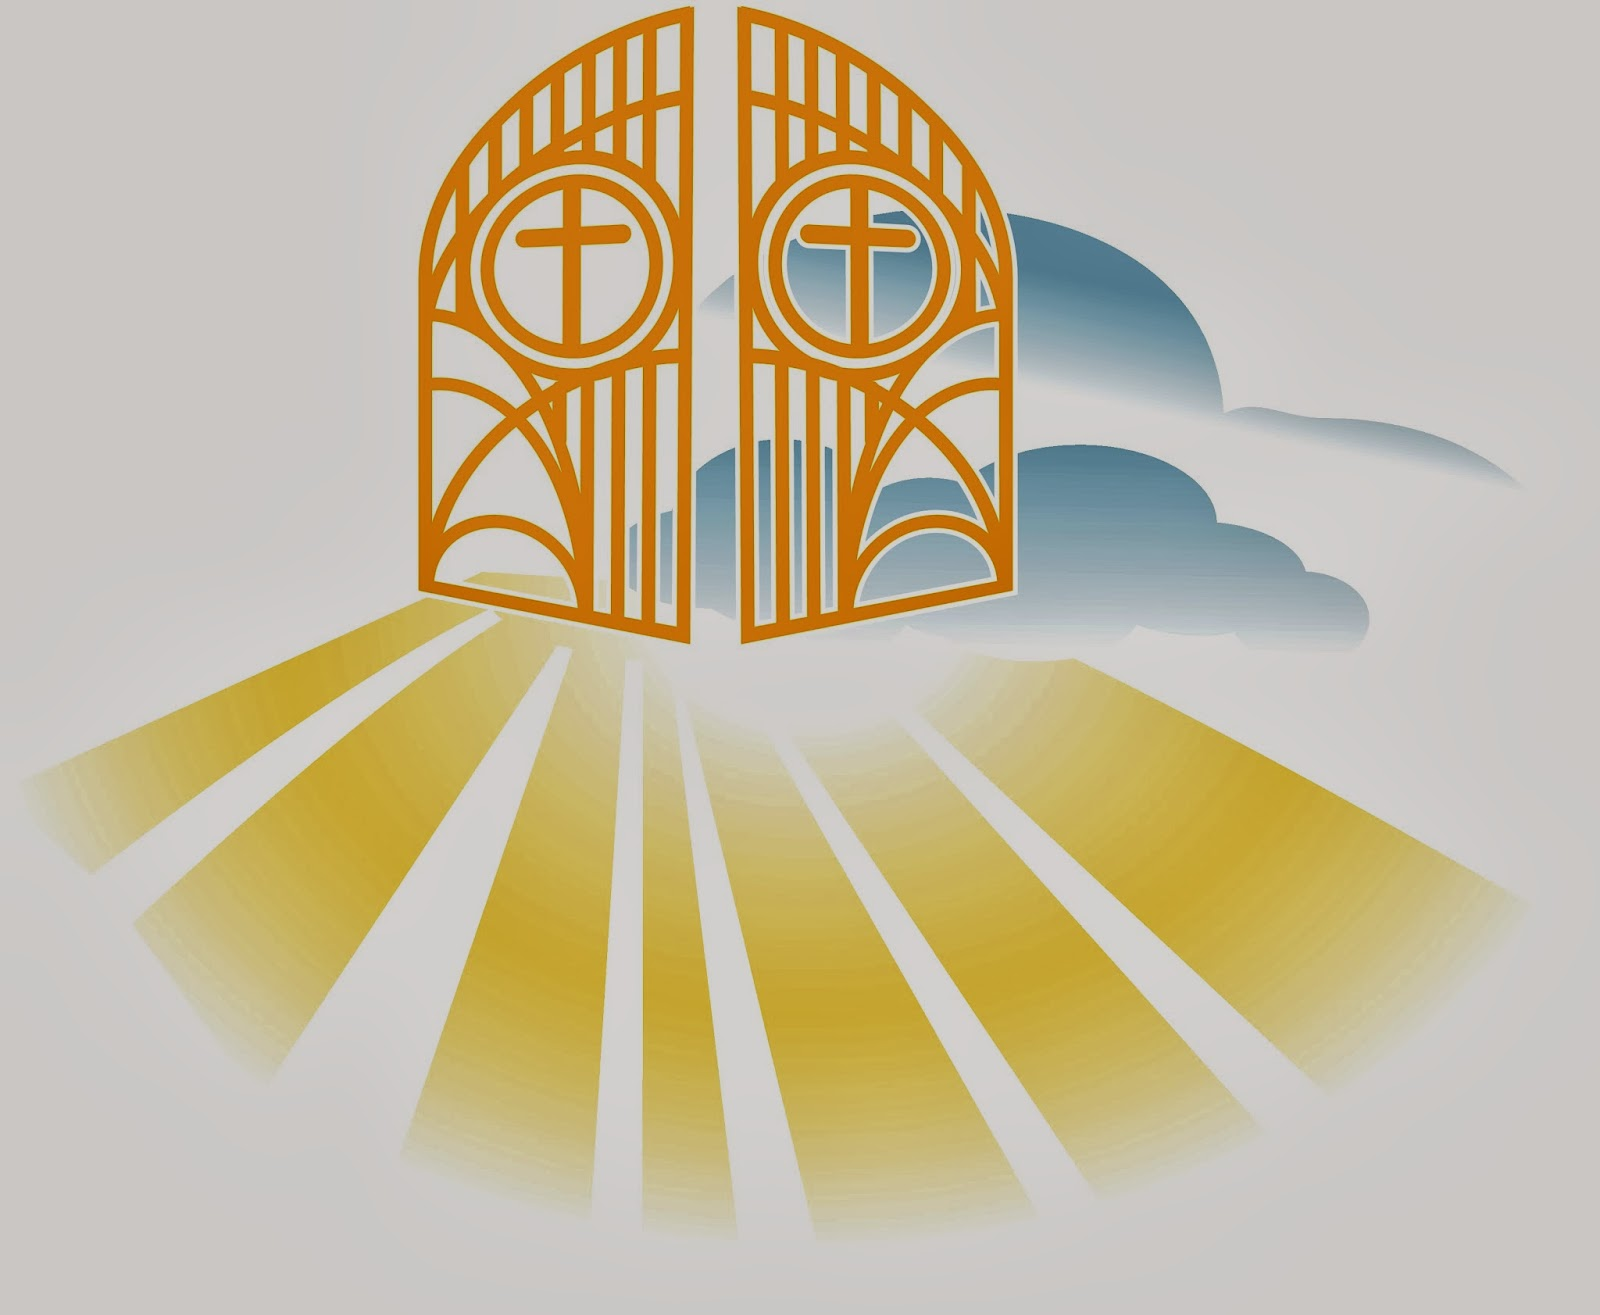 Free Heavens Gates Cliparts, Download Free Clip Art, Free.